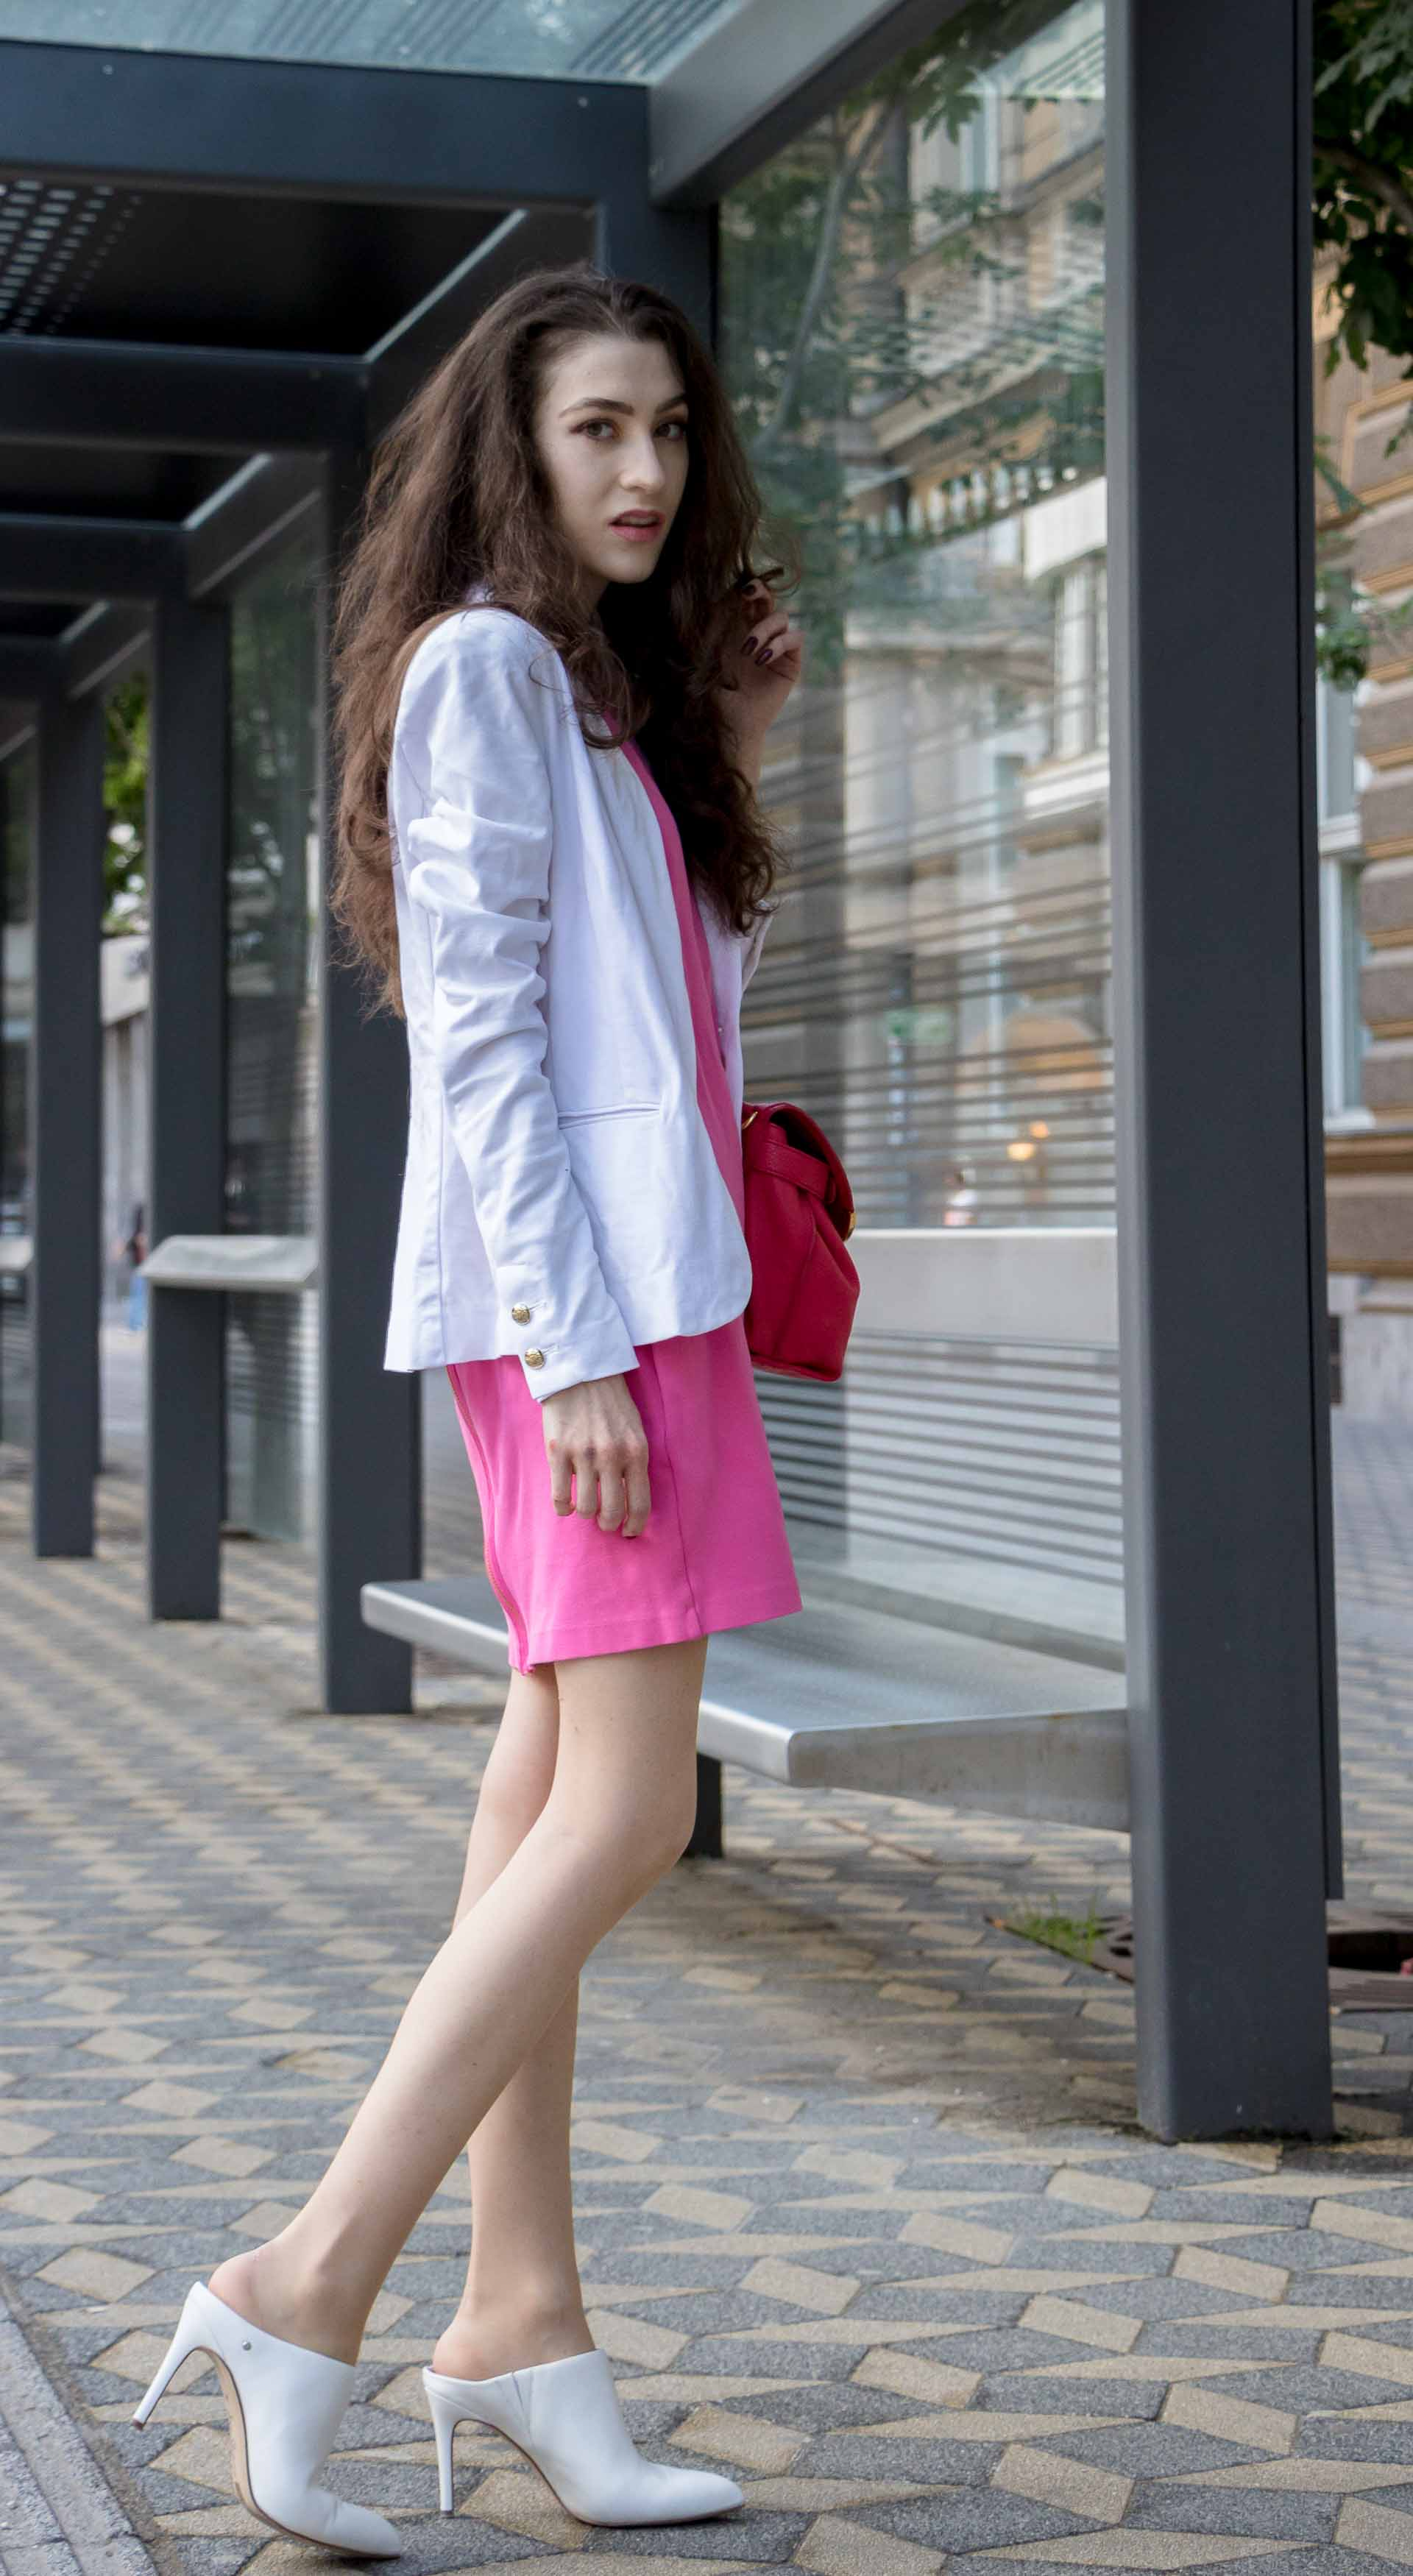 Fashion Blogger Veronika Lipar of Brunette from Wall Street wearing summer business casual outfit, white high heel close toe mules, pink tailored short dress, white blazer, pink top handle bag on her way to work